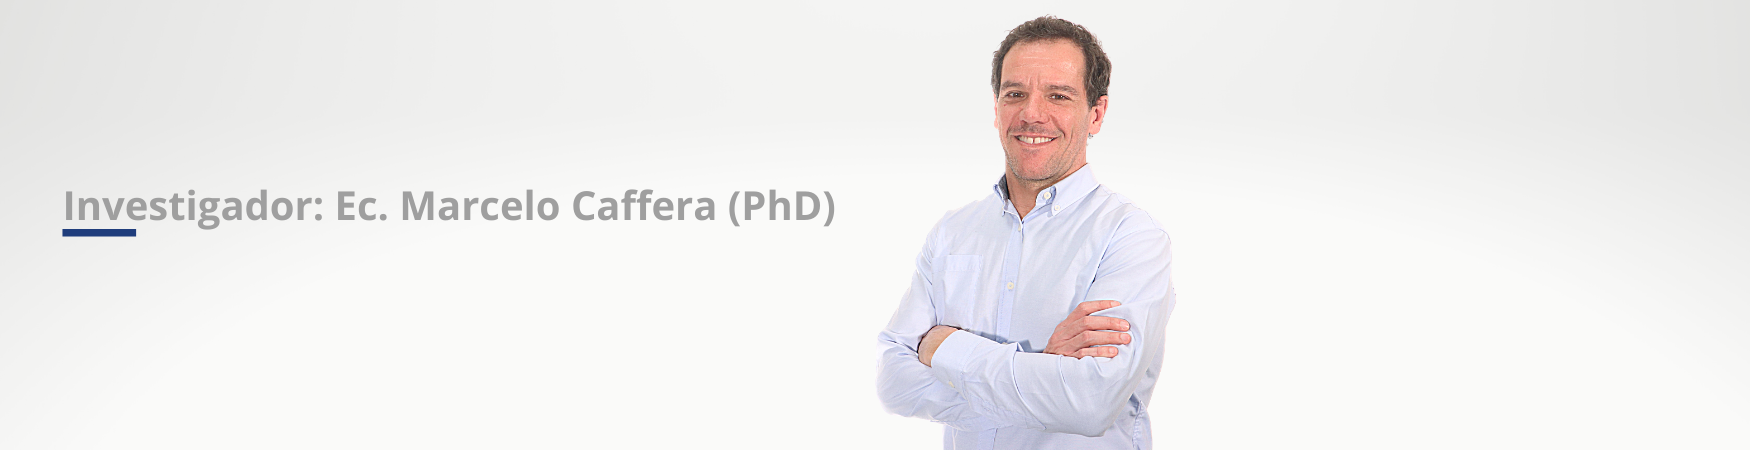 Marcelo Caffera (PhD)